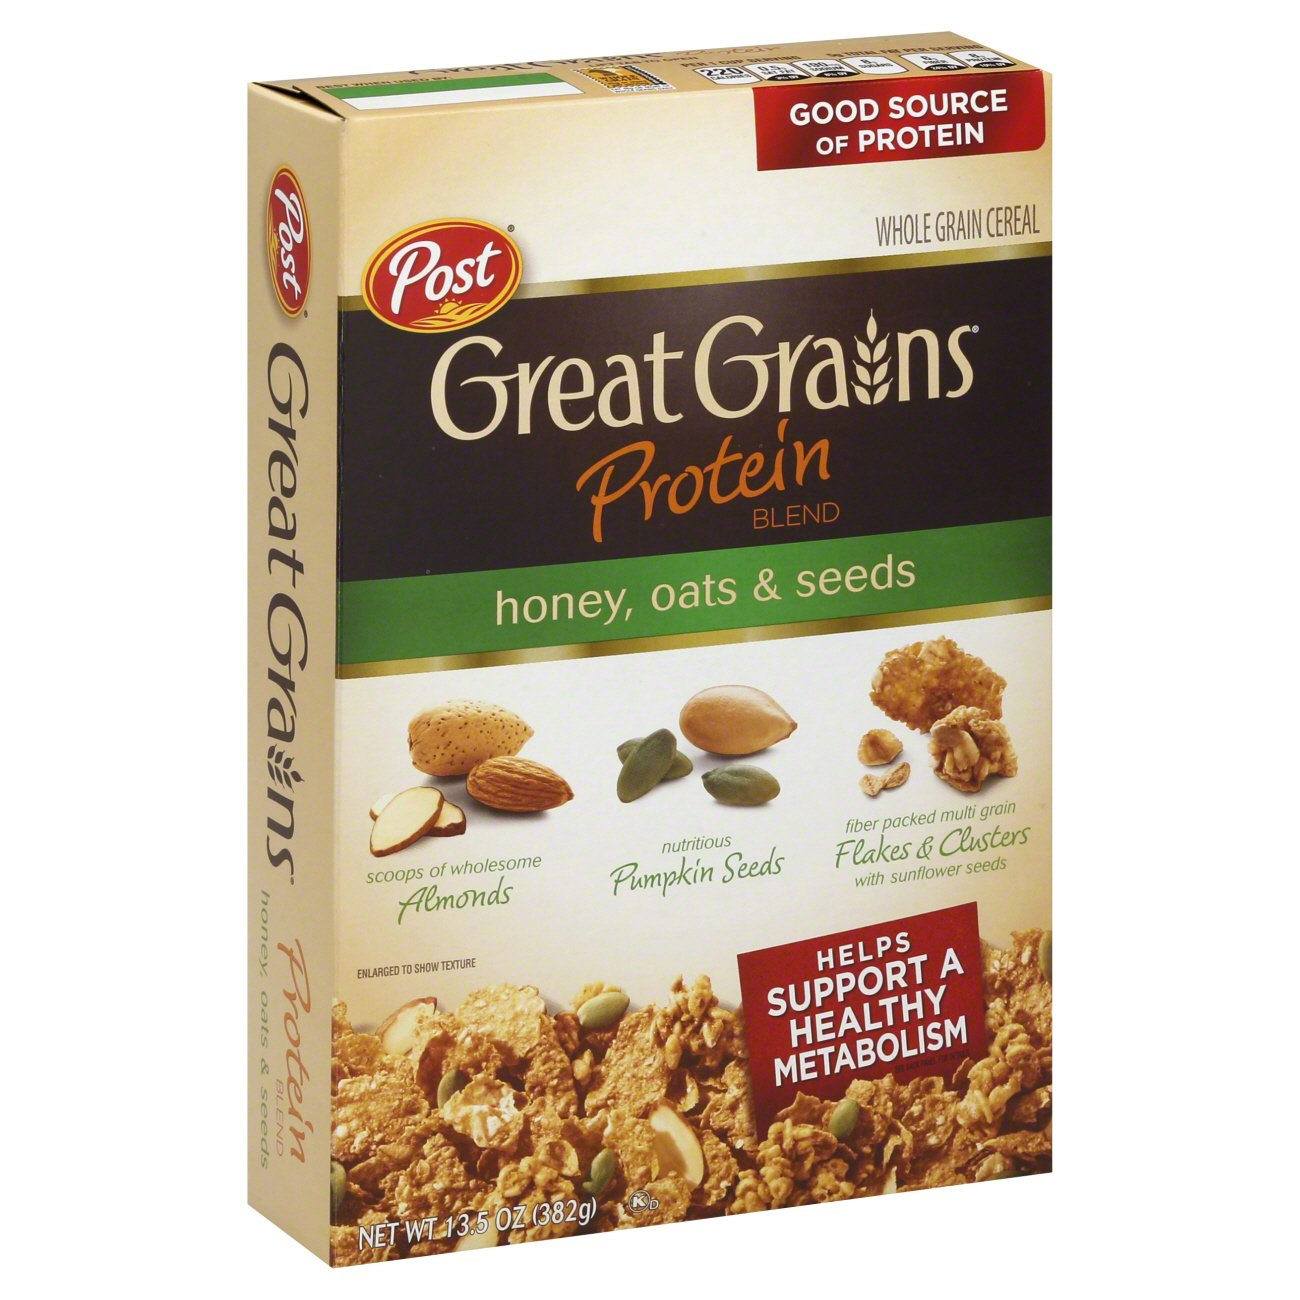 Post Great Grains Protein Blend Honey Oats And Seeds Whole